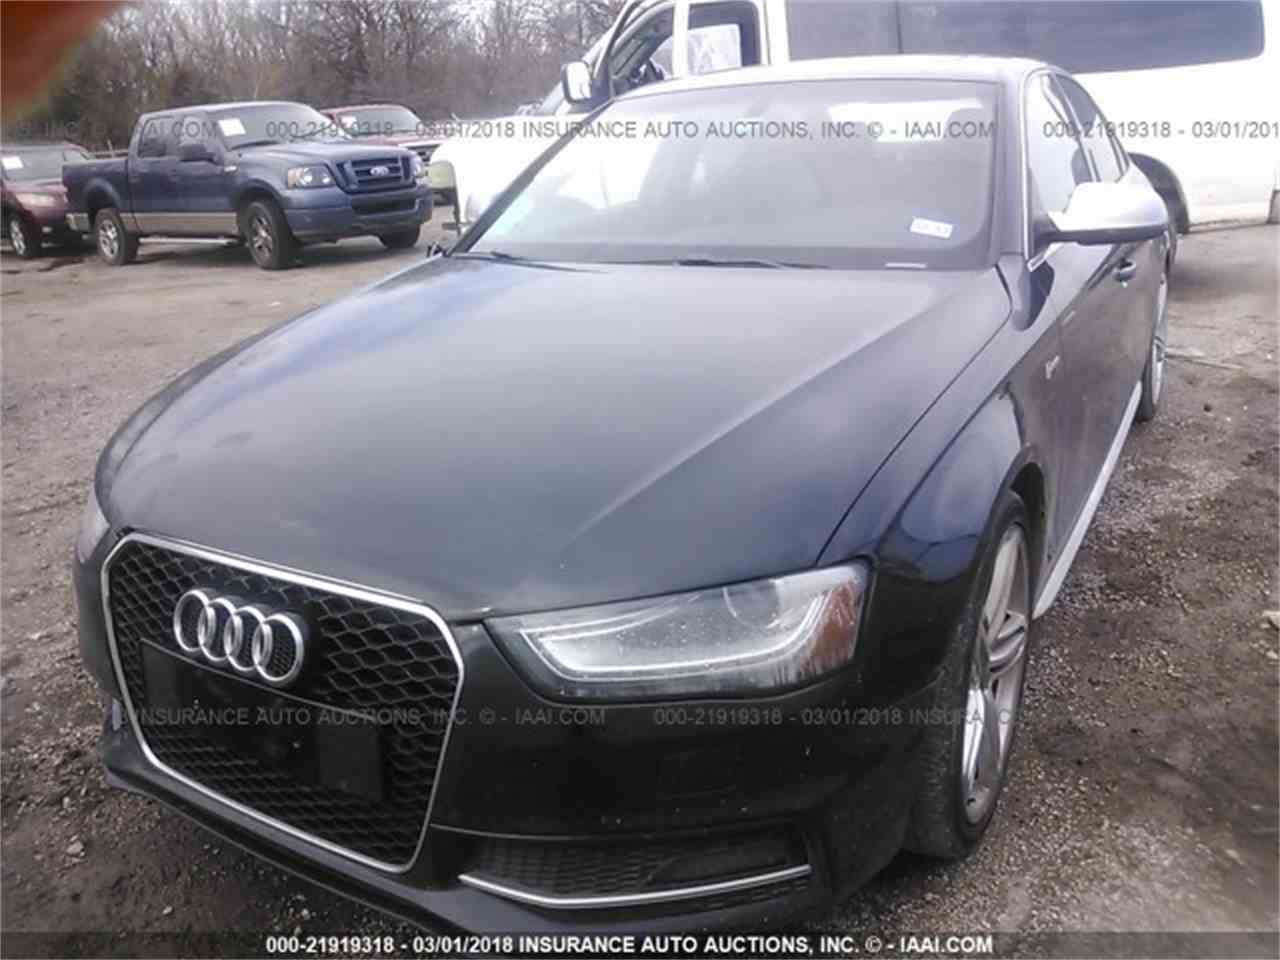 sale in view c for audi std sca vehicle online picture offered cc listings auction large of com by classiccars